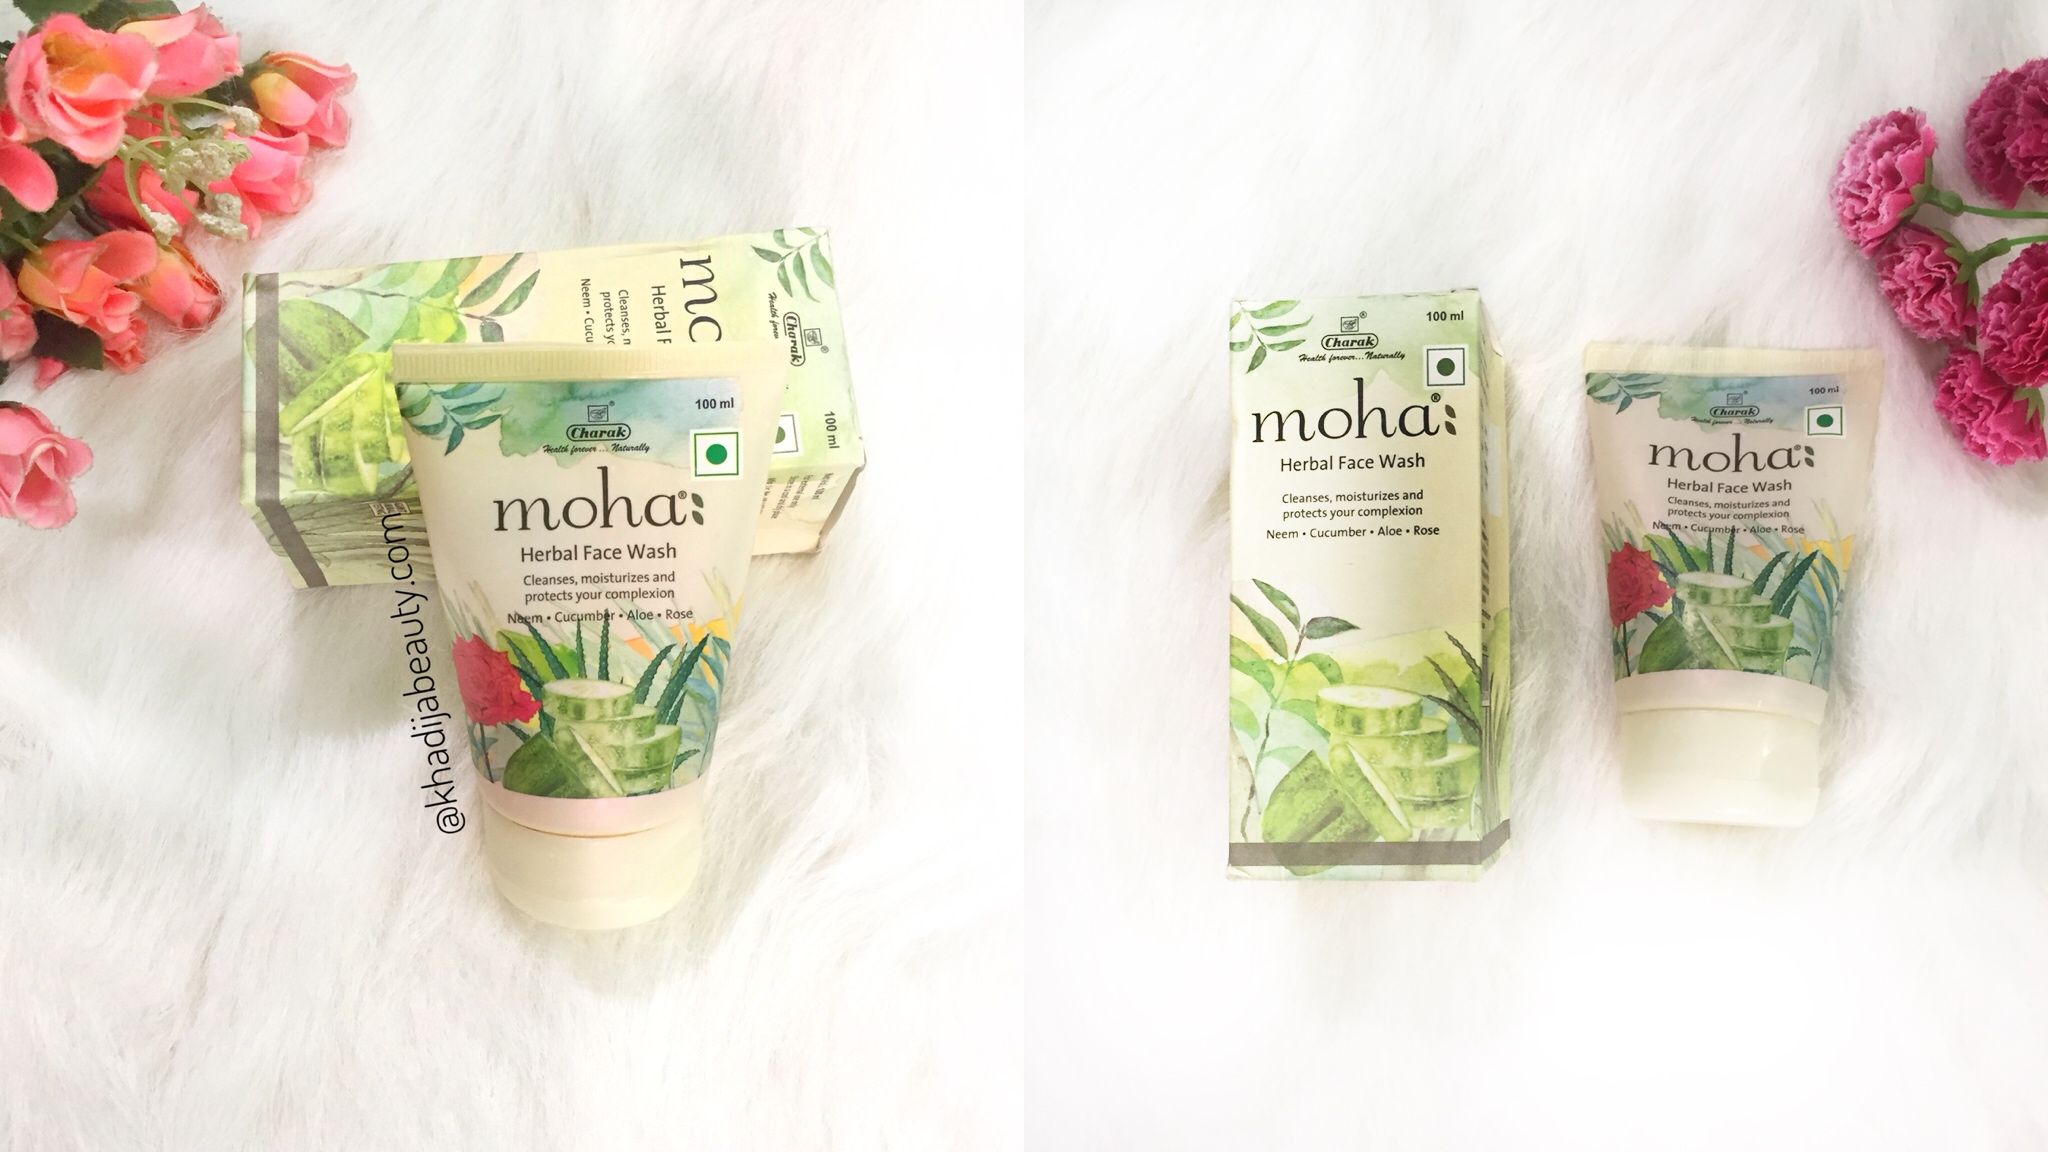 Moha Herbal face wash Review| Cleanses, Moisturizes & Protects complexion